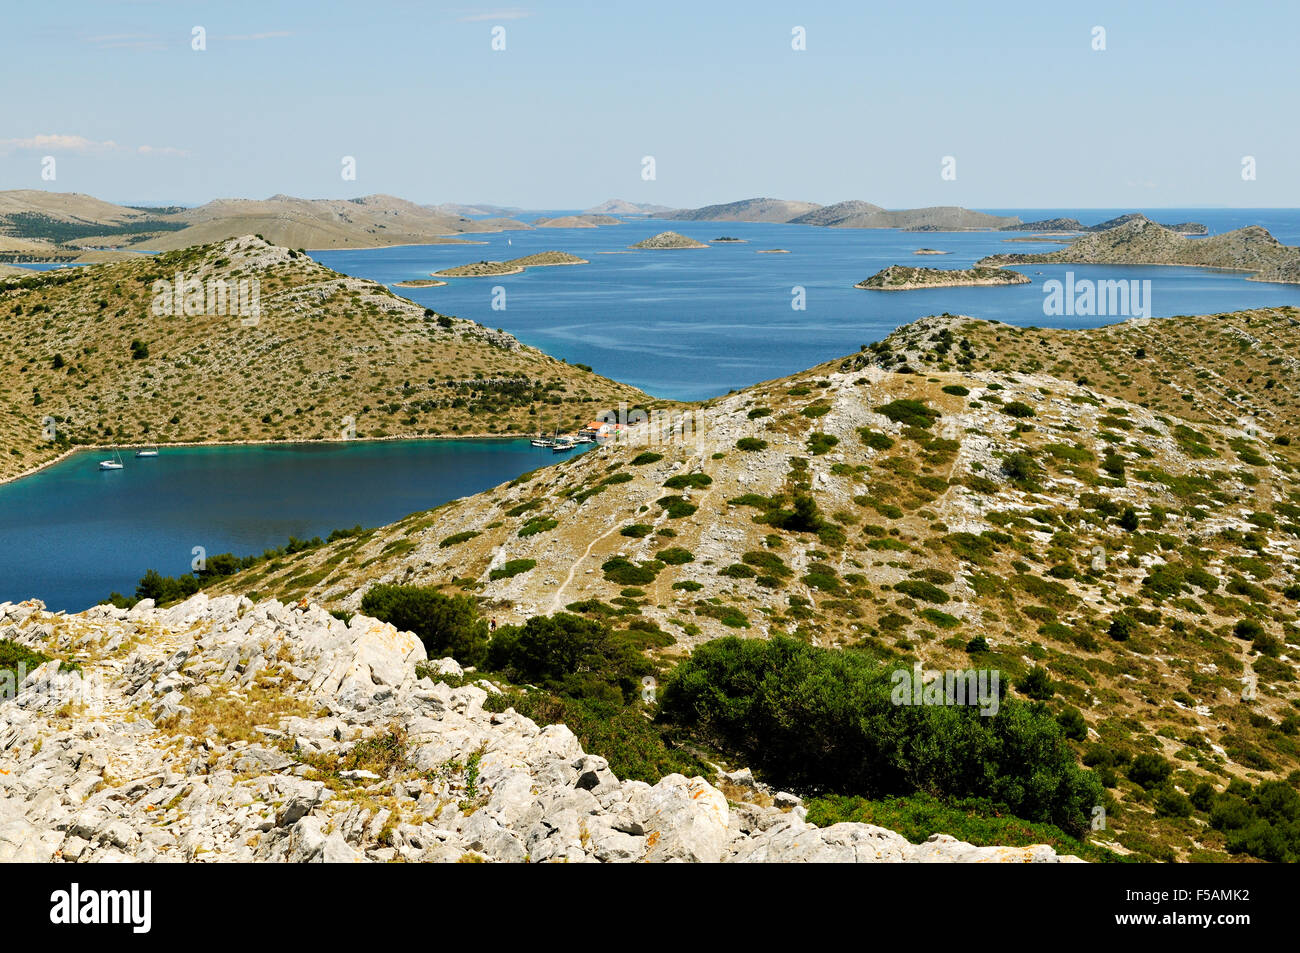 Many islands of the Kornati archipelago from the top of Levrnaka, Dalmatia, Croatia - Stock Image